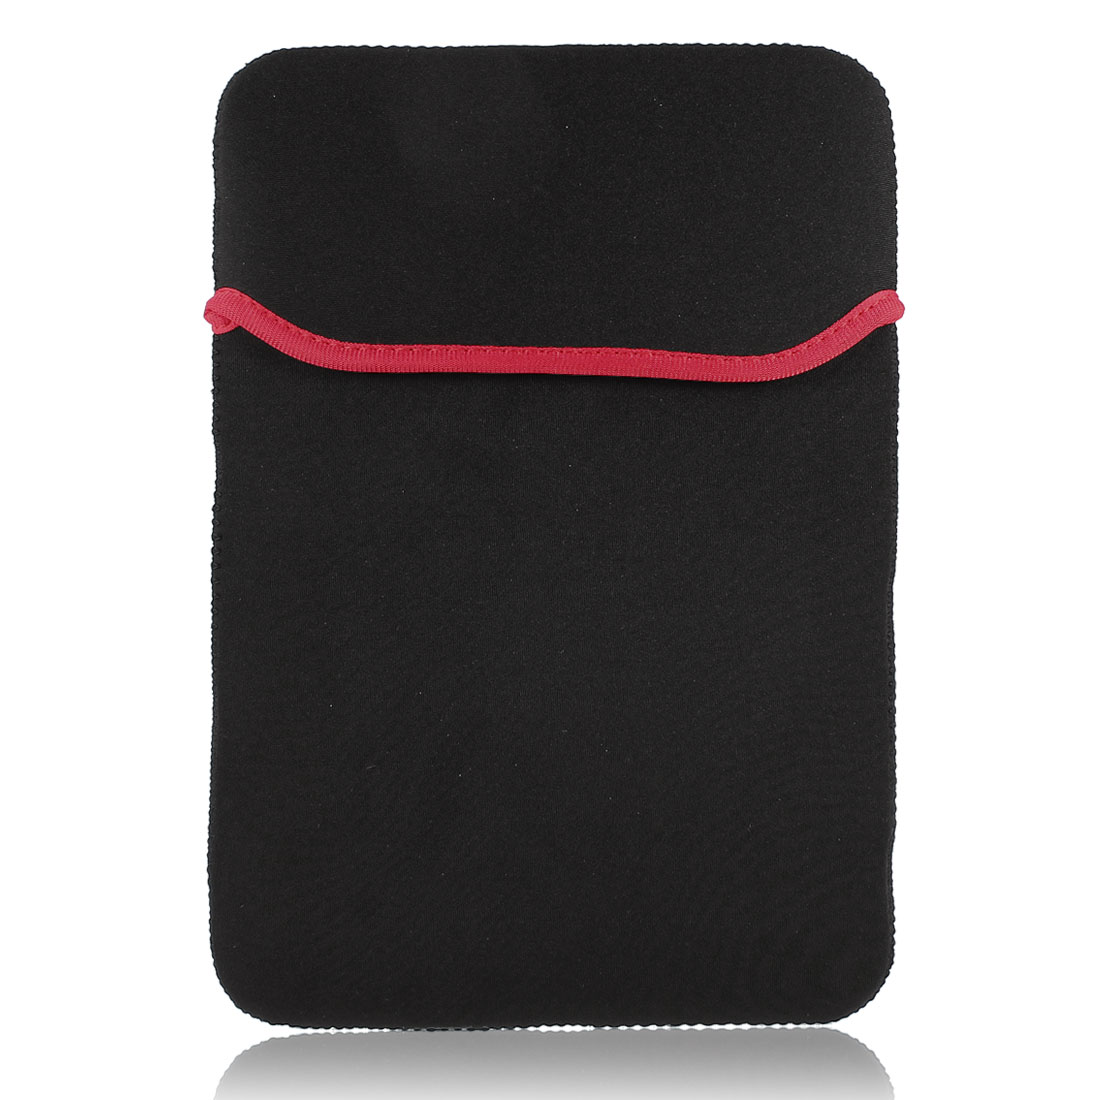 "14"" 14.1"" Black Neoprene Laptop Notebook Sleeve Case Bag Pocuh"